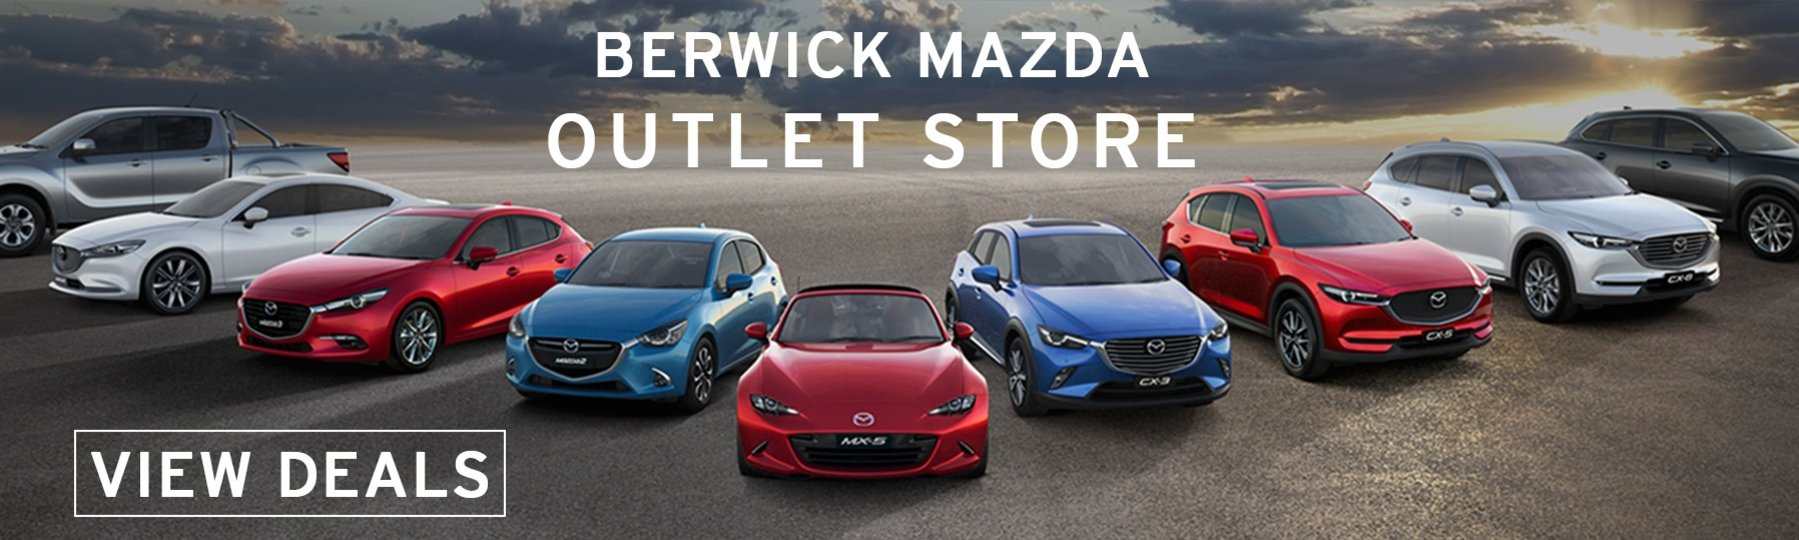 Berwick Mazda Outlet Store